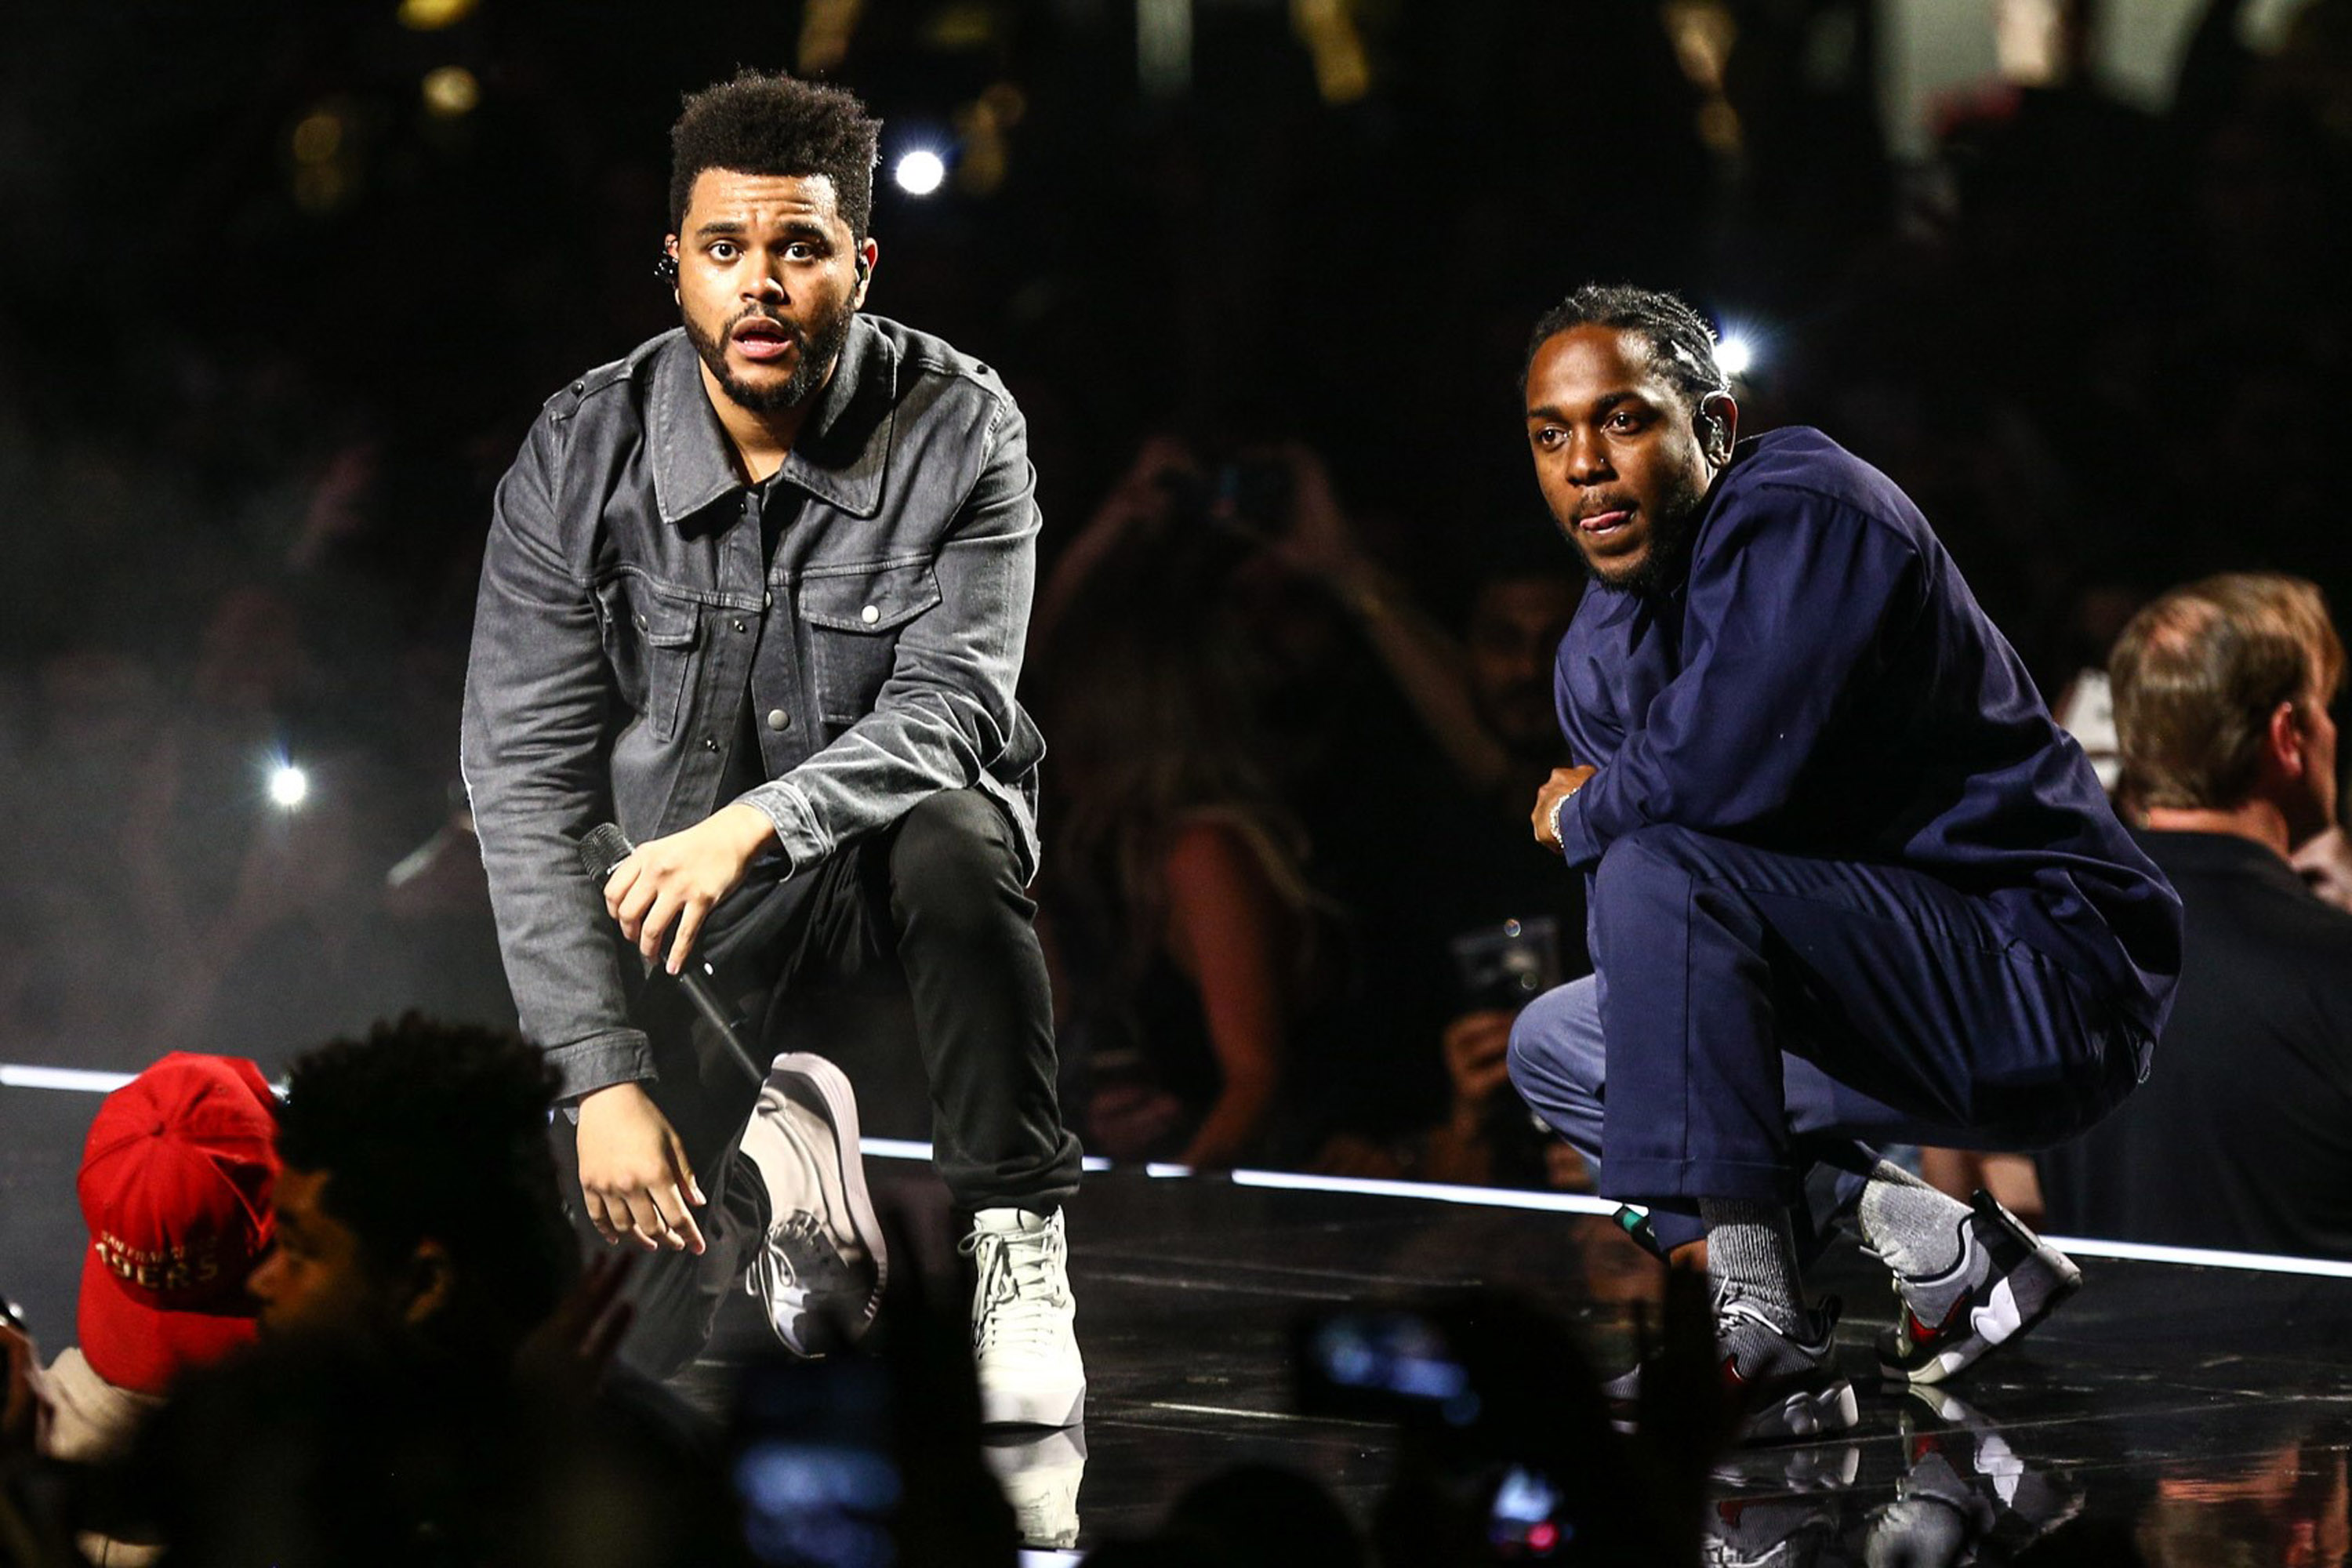 """New Music: The Weeknd """"Pray For Me"""" Feat  Kendrick Lamar"""